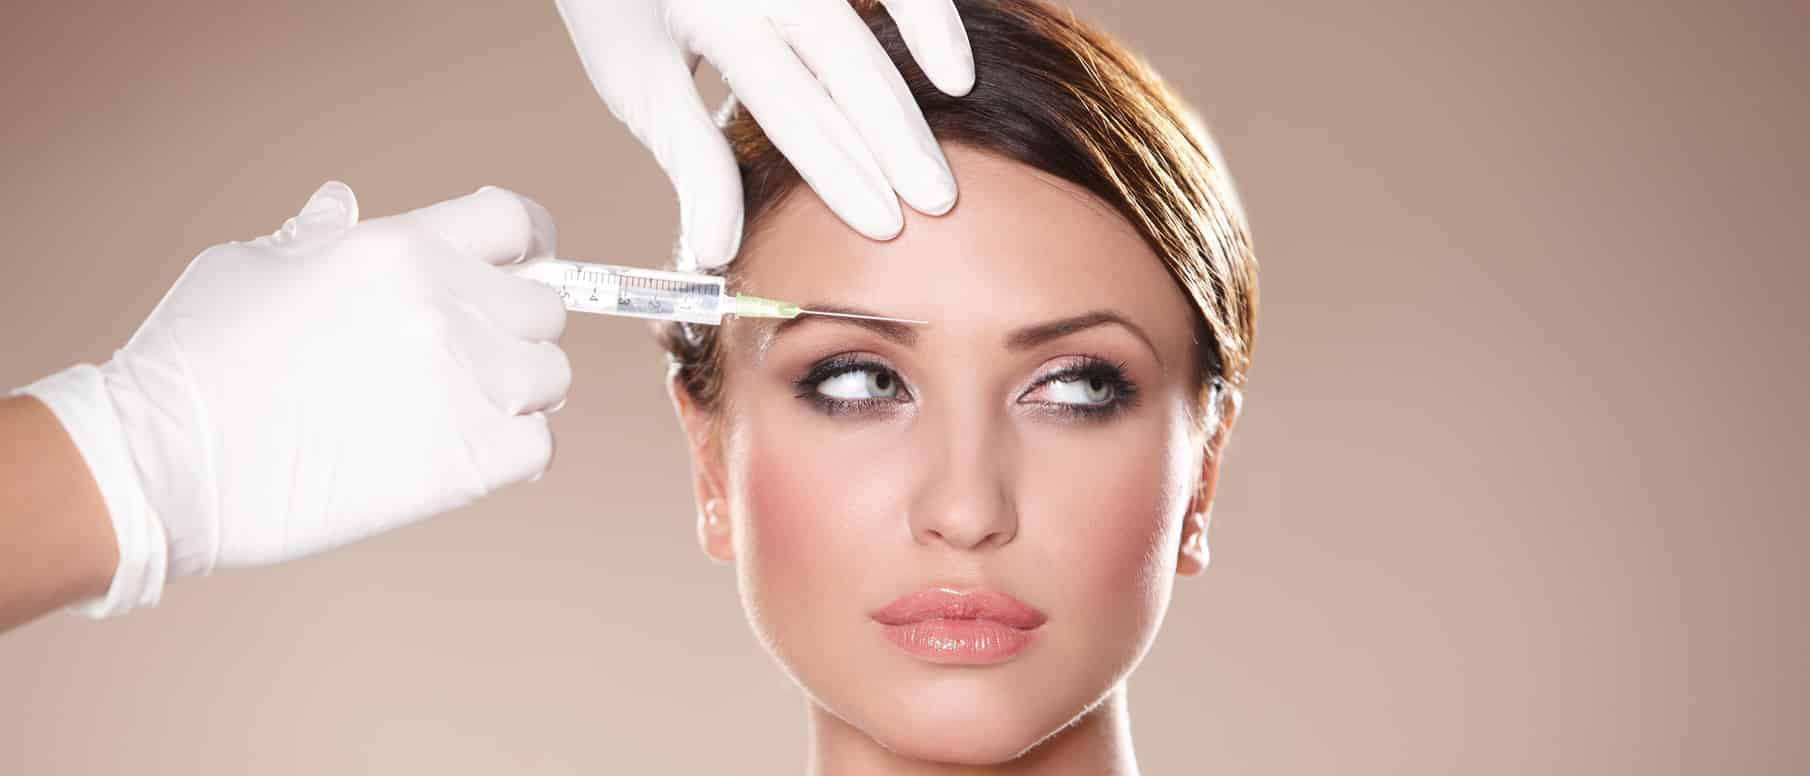 Botox Gone Wrong What You Need To Know About Botox Injections